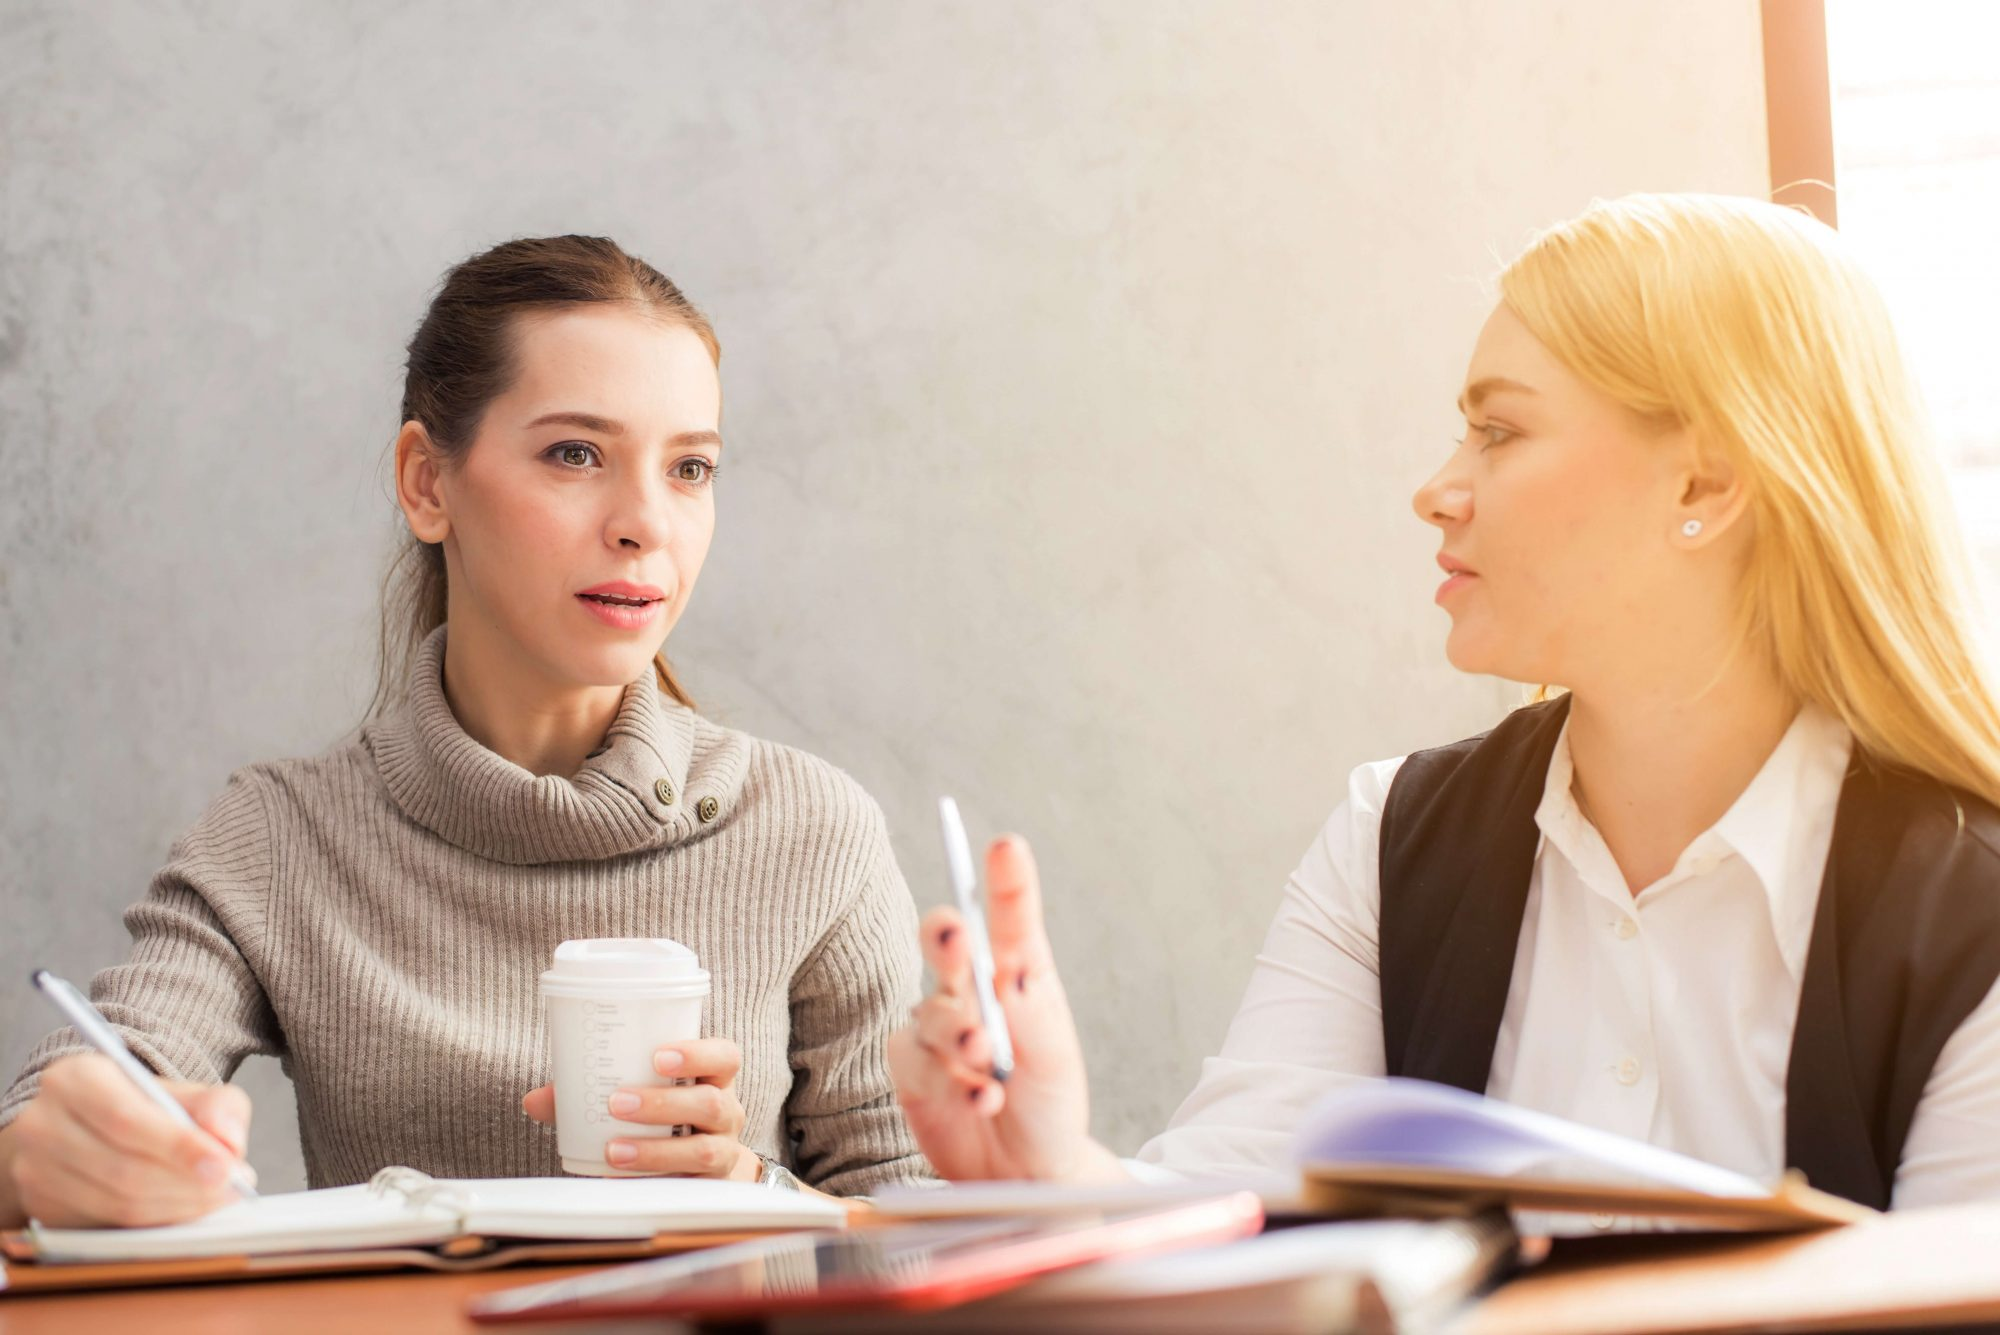 4 Parts of an Effective One-on-One Meeting